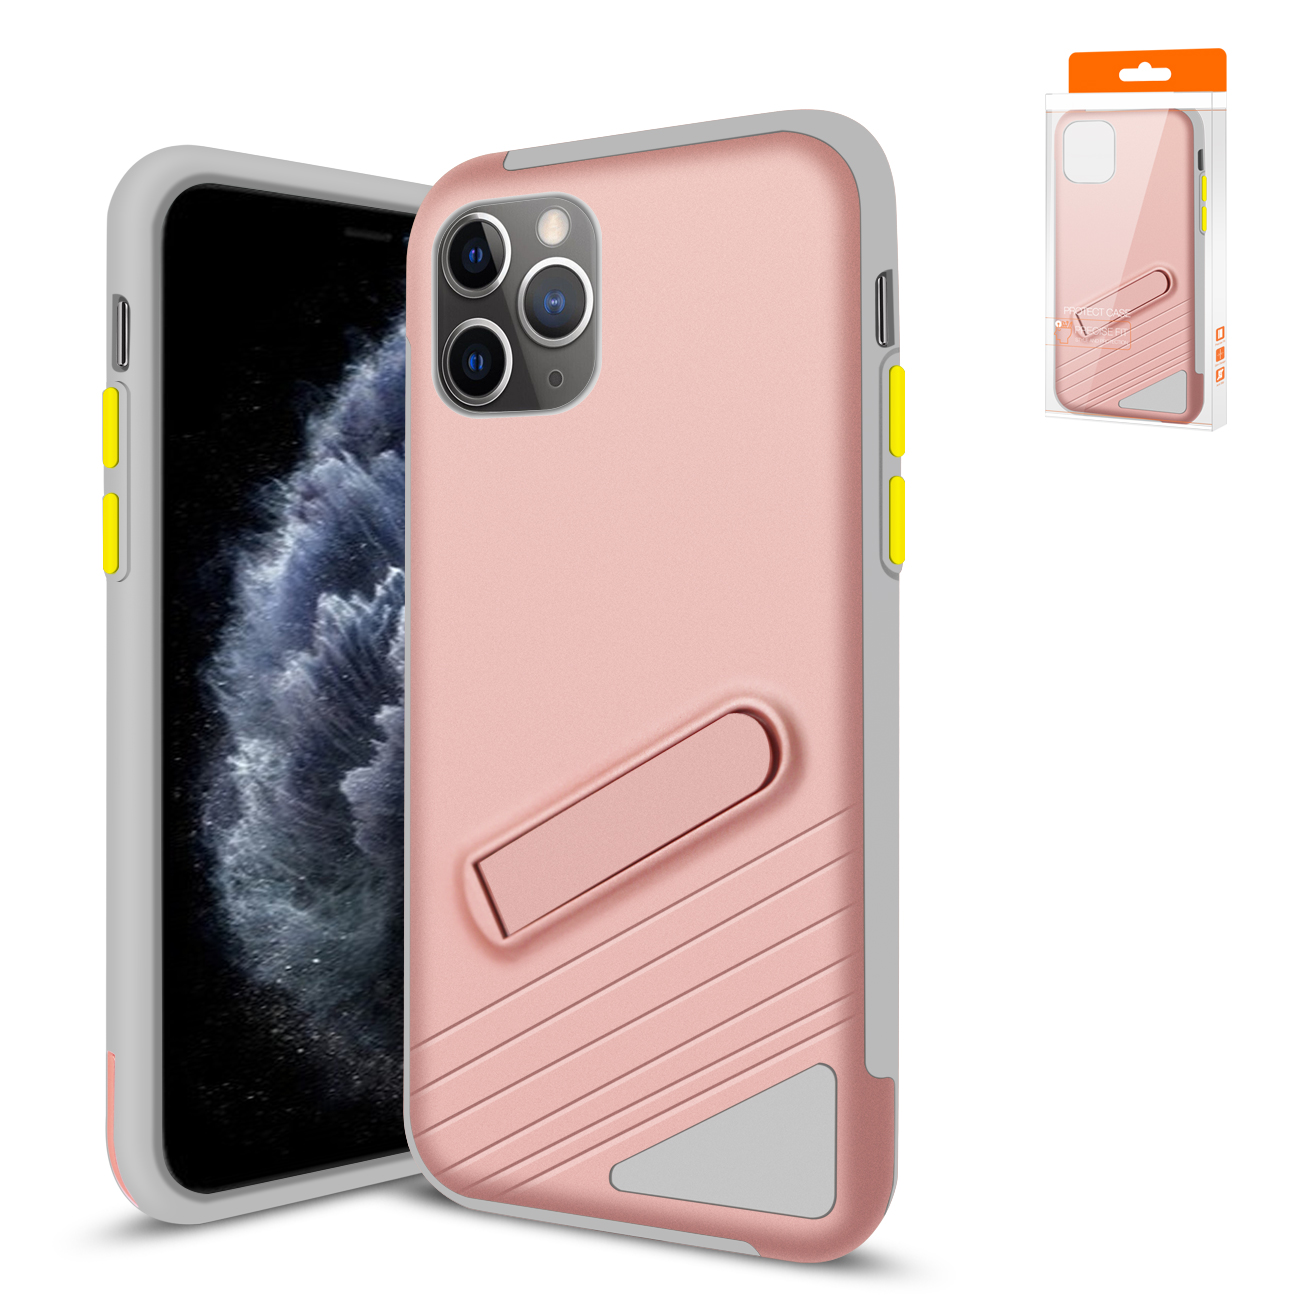 Apple iPhone 11 Pro Max Armor Cases In Rose Gold